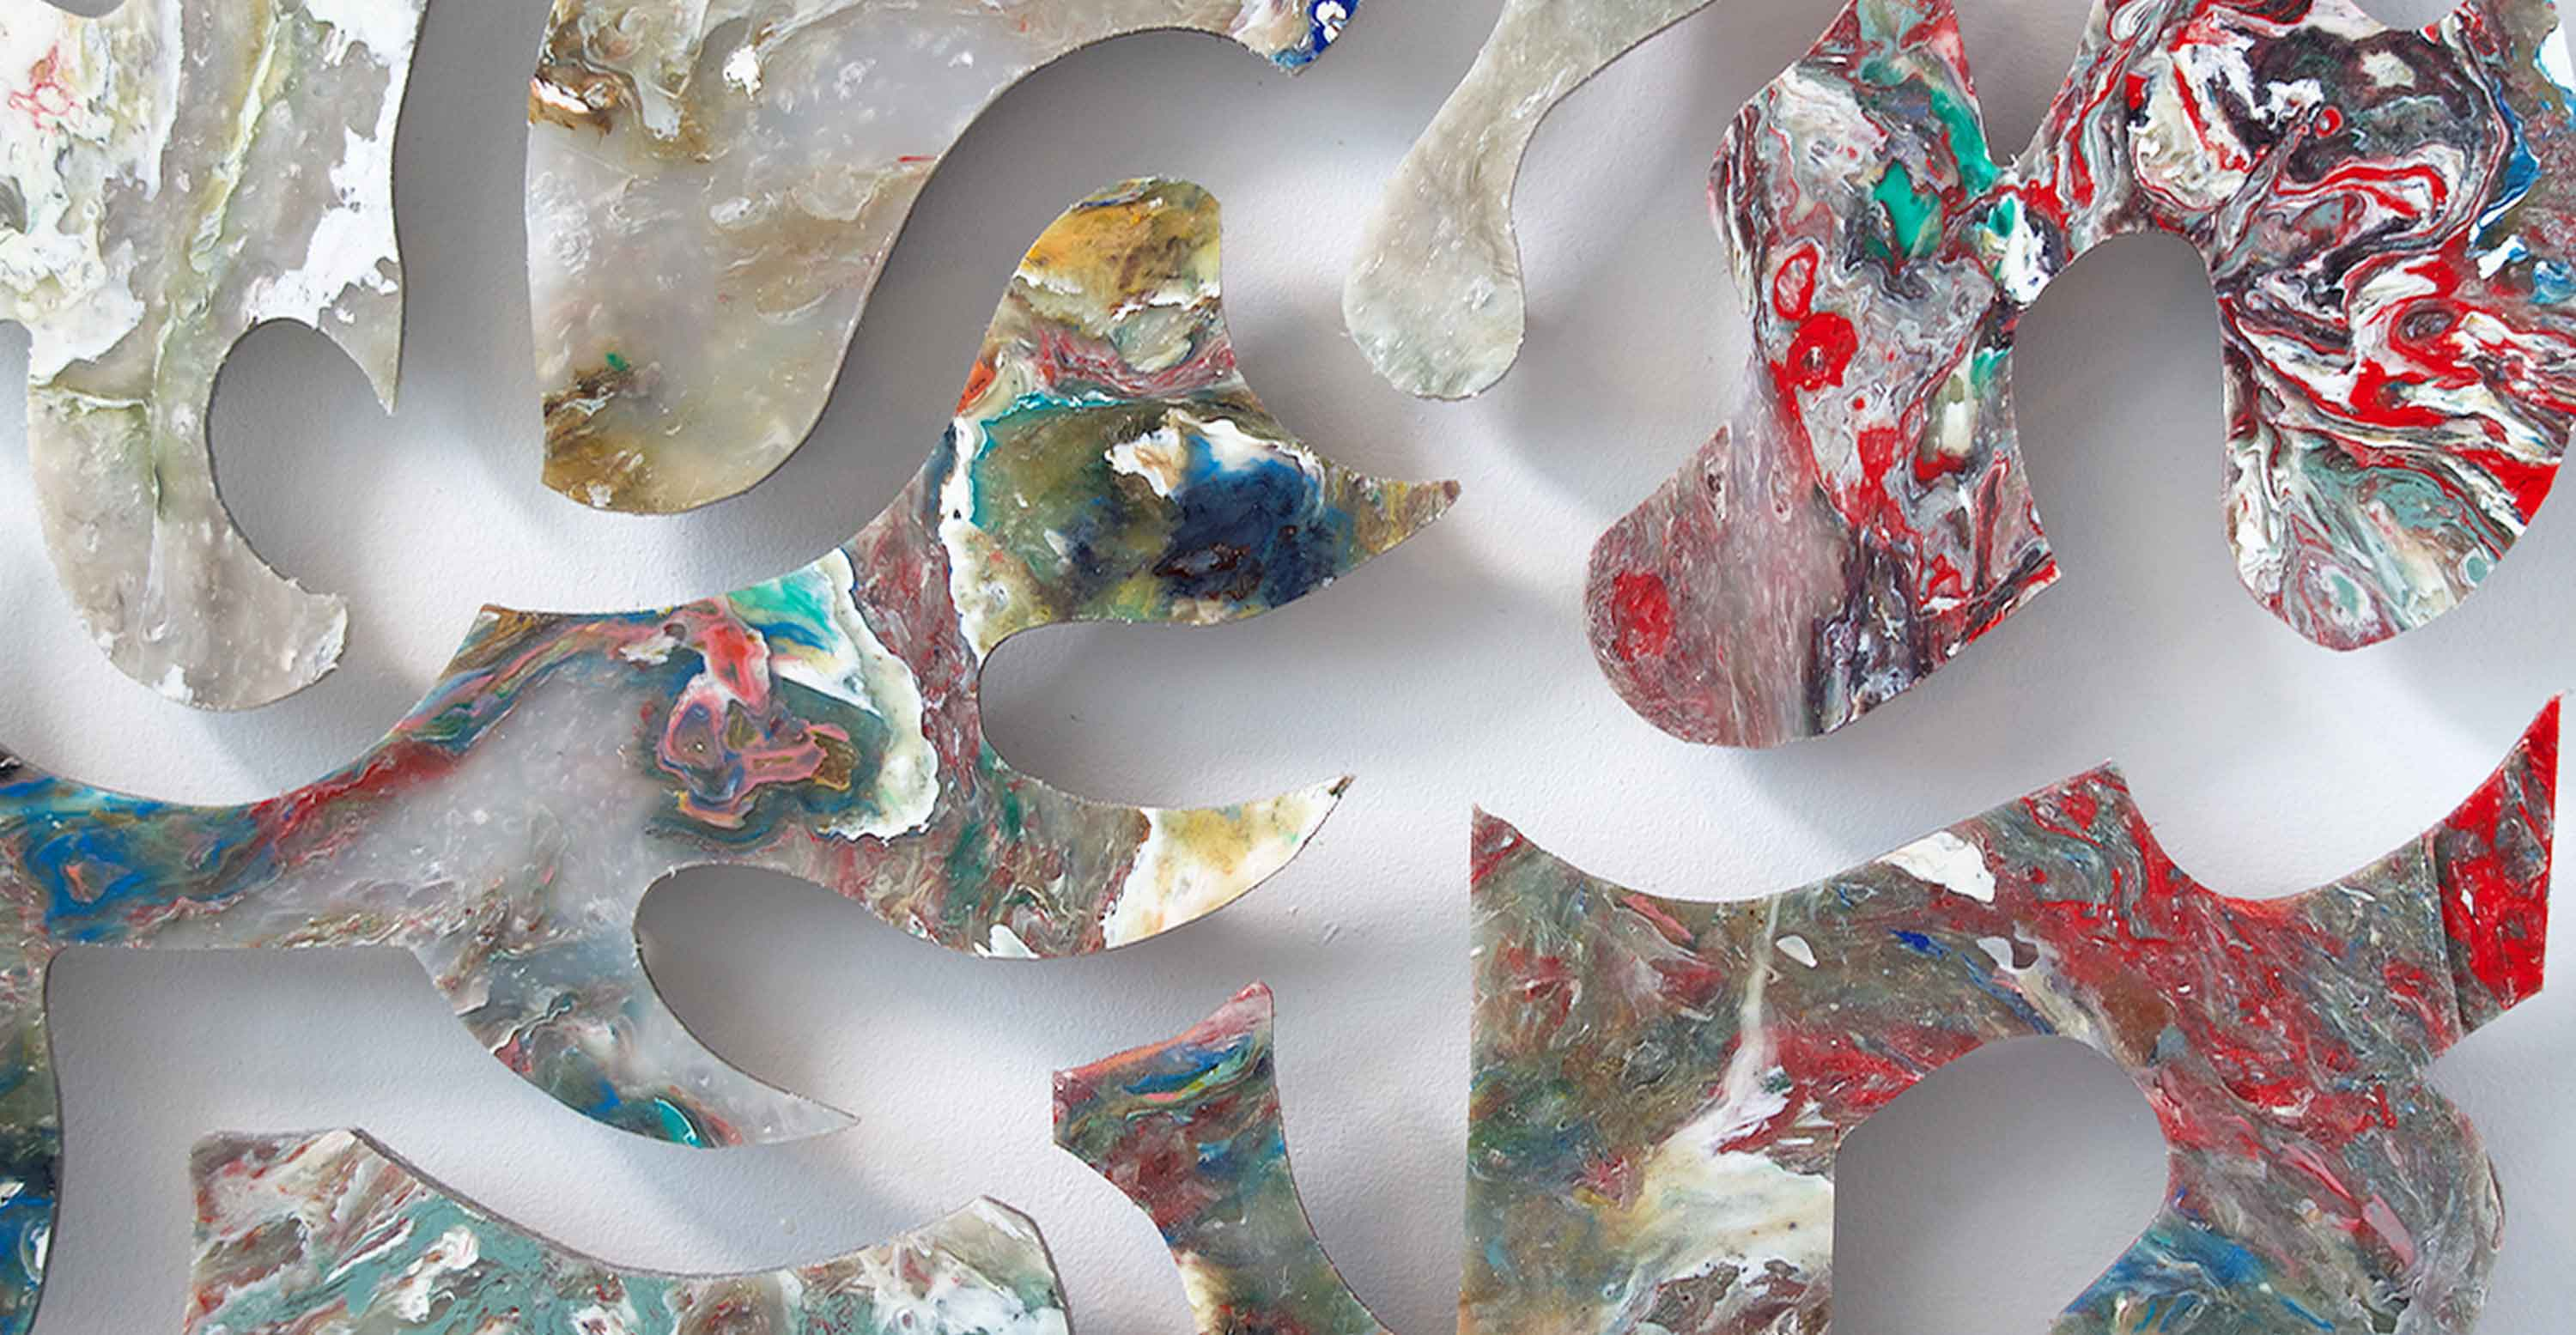 Detail of PECO artpiece called Composition#1